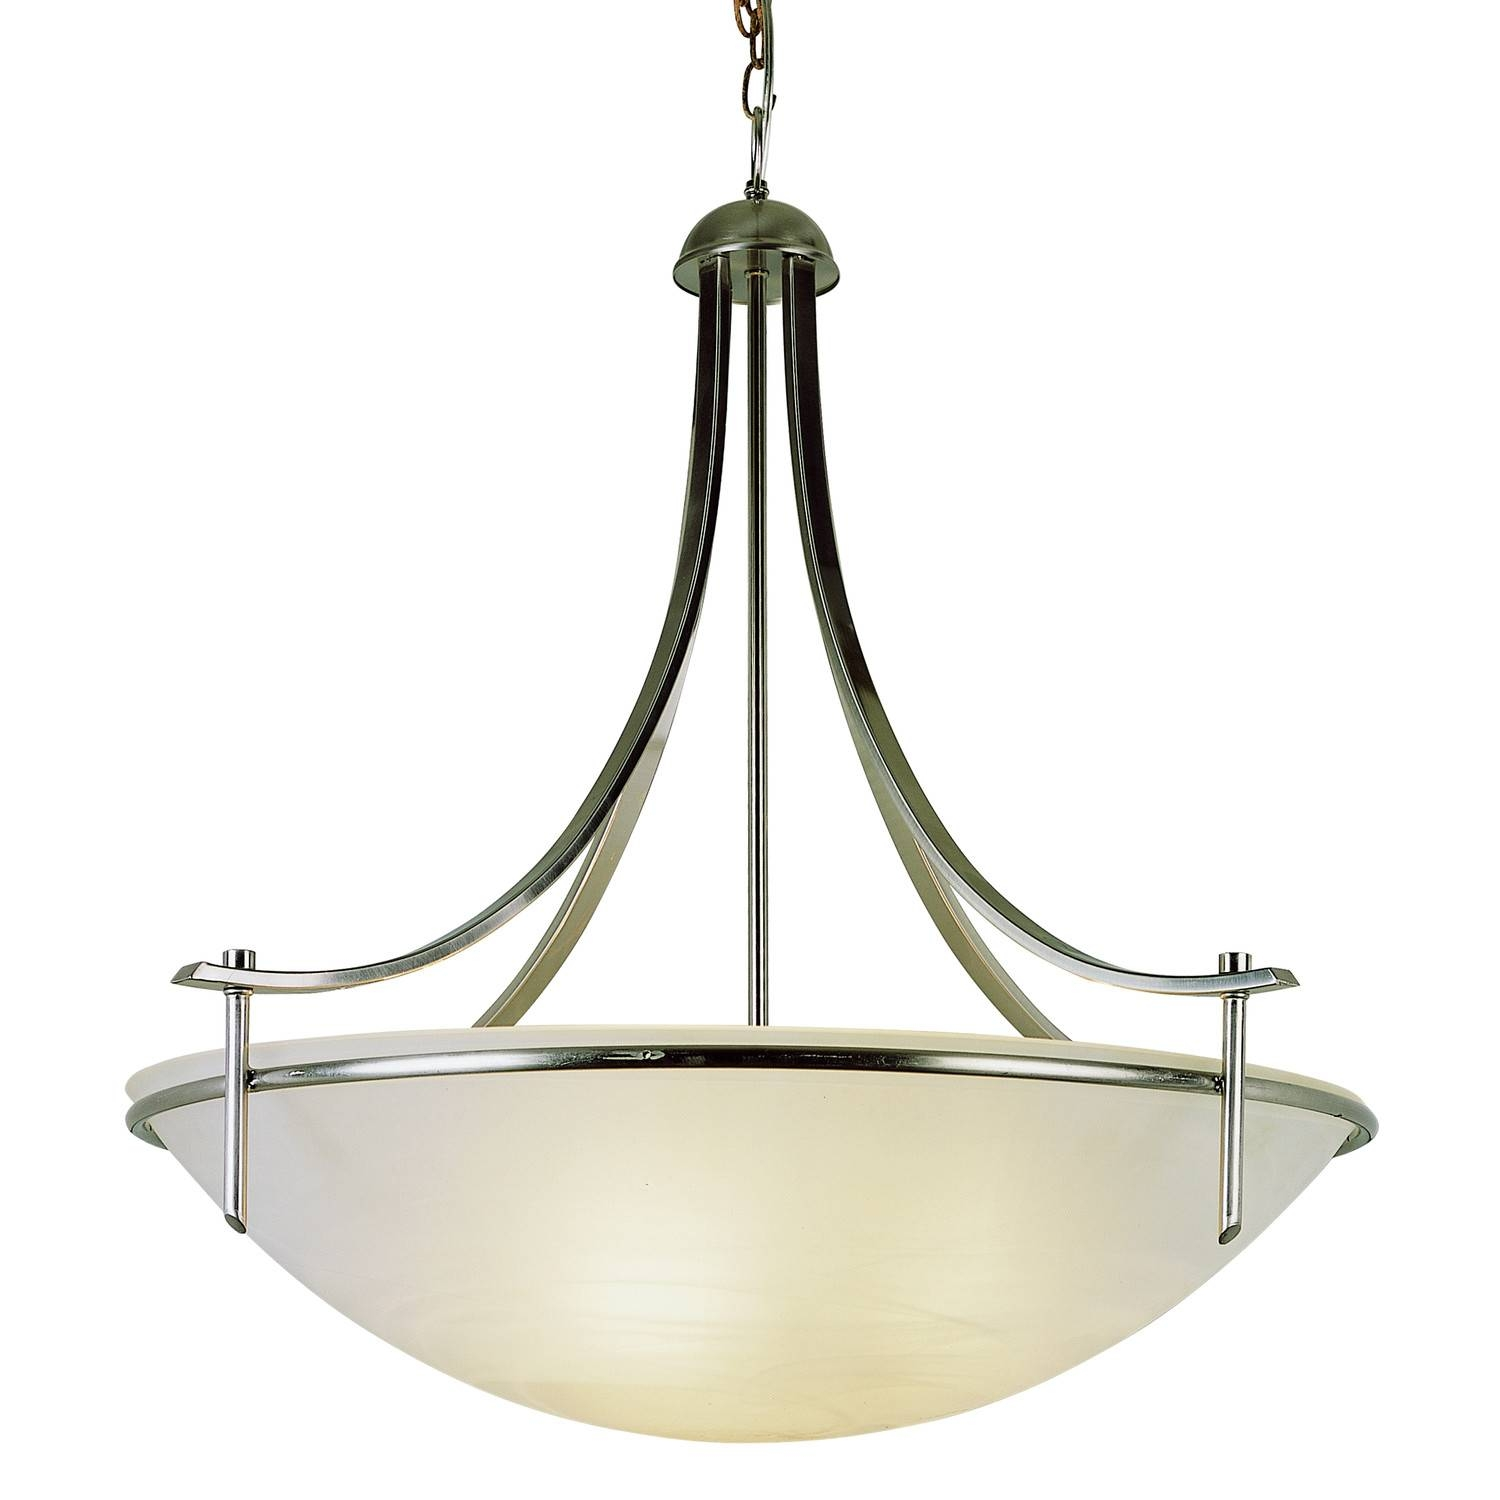 Exterior: Classic Three Light Inverted Pendant Lightingtrans with regard to Inverted Pendant Lighting (Image 5 of 15)